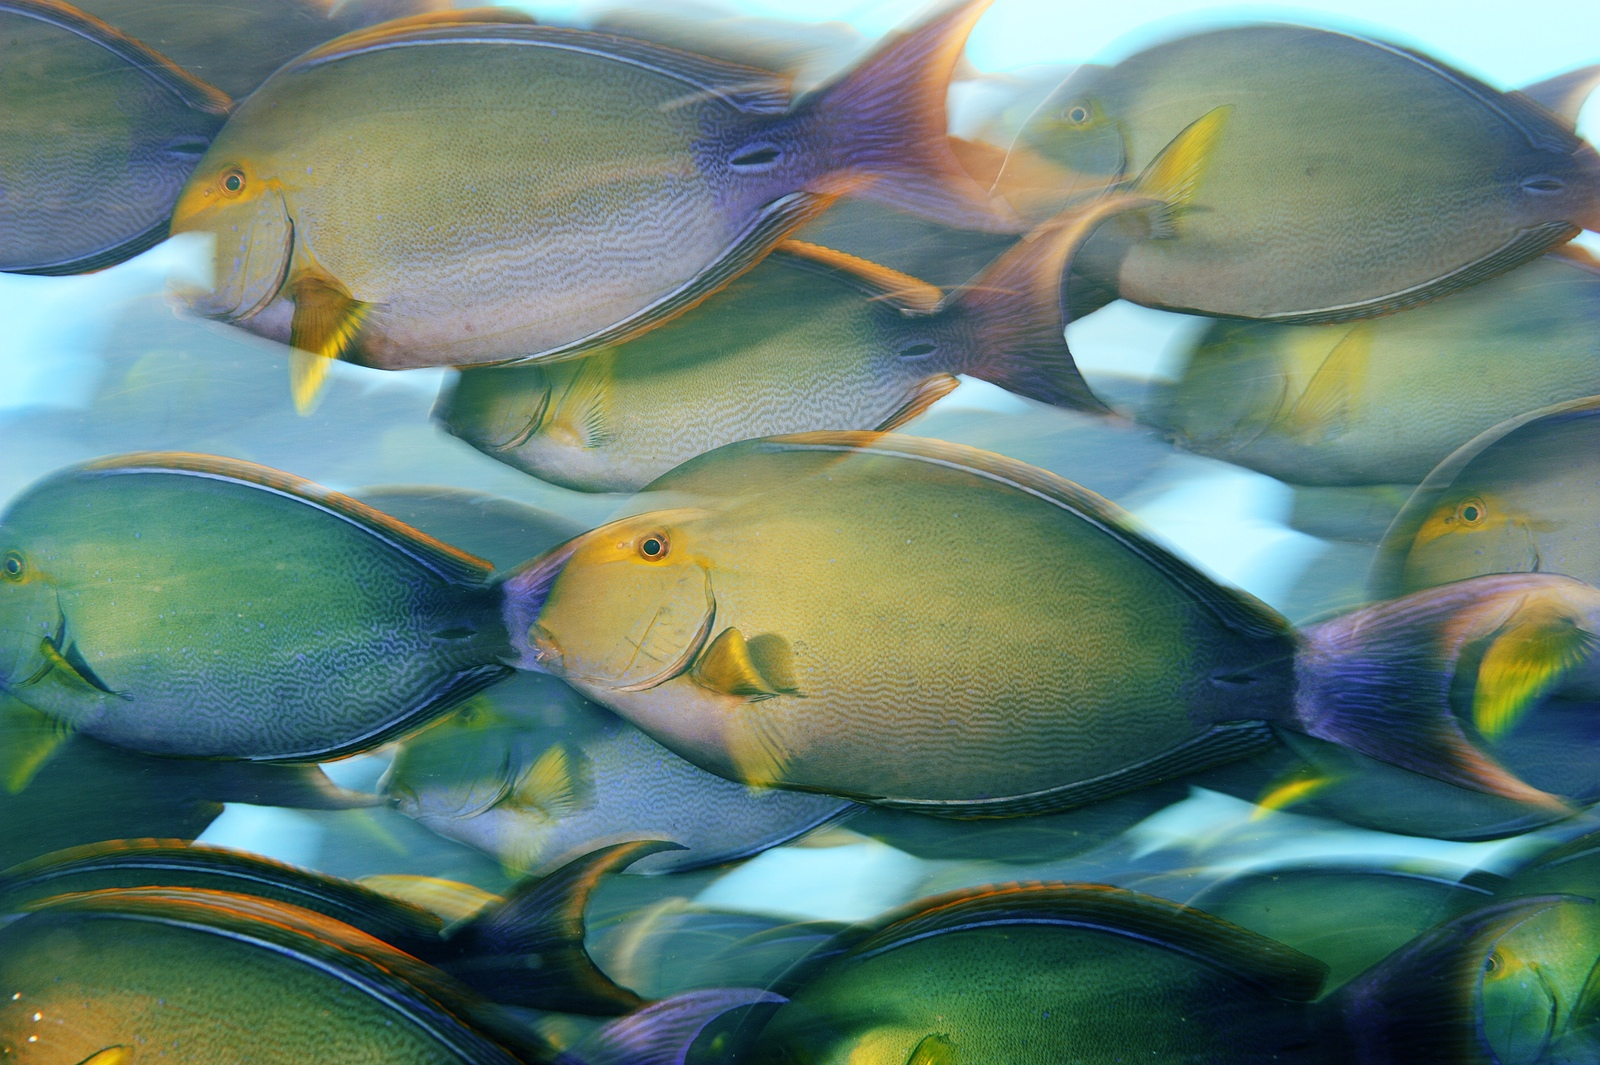 A school of yellowfin surgeonfish feed near dusk off Canton Island in the Phoenix Islands.<div class='credit'><strong>Credit:</strong> A school of yellowfin surgeonfish feed near dusk off Canton Island in the Phoenix Islands.</div>